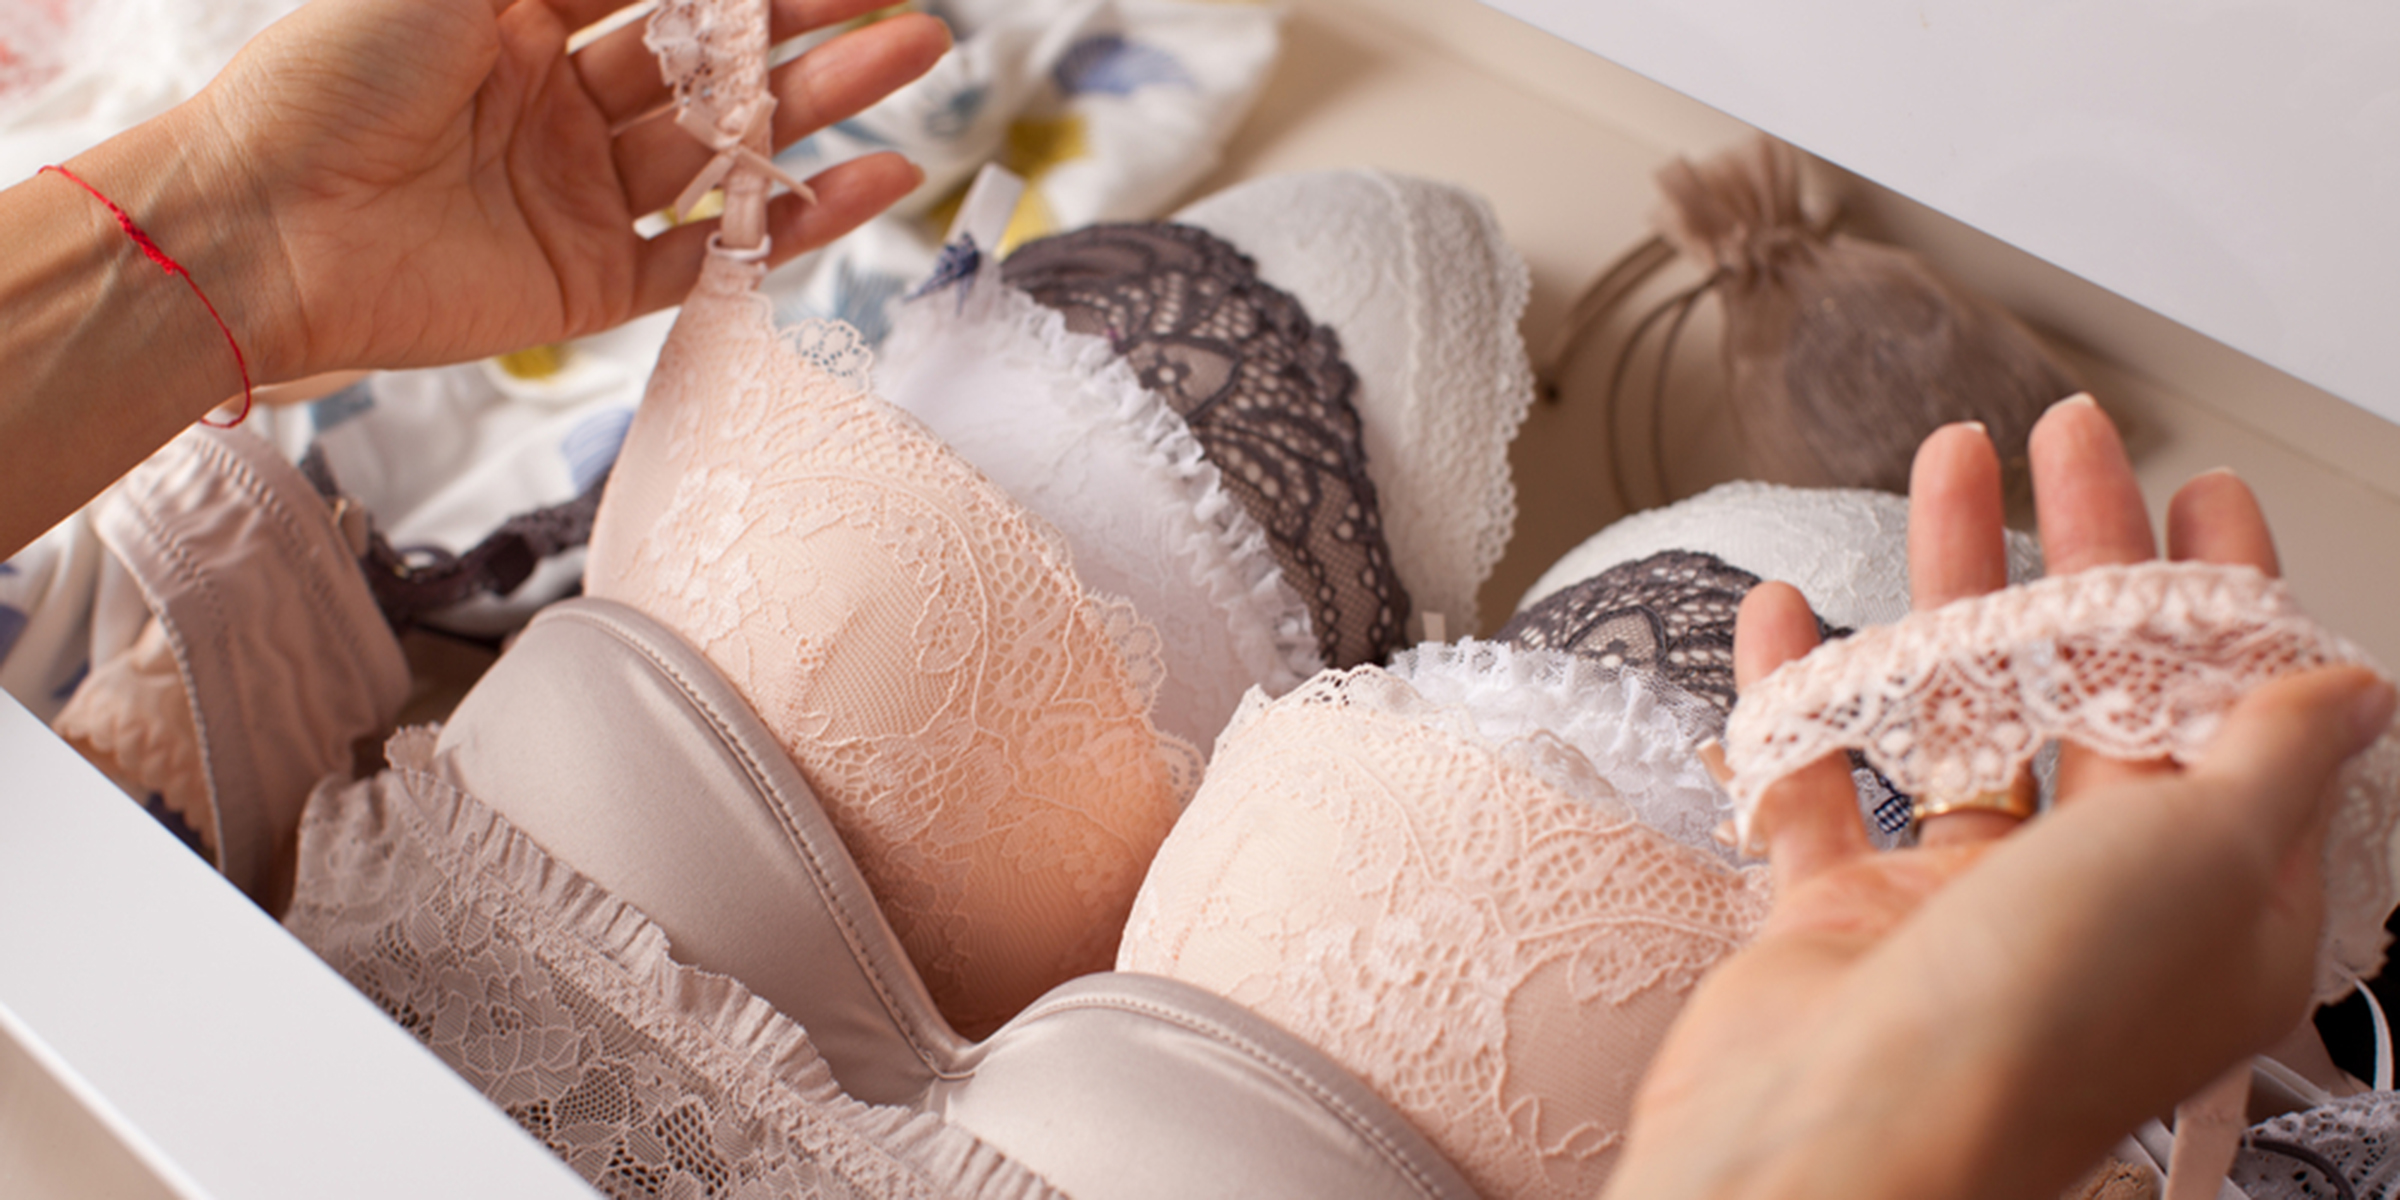 cb742d0313c3ba The 9 best bras every woman needs in 2019